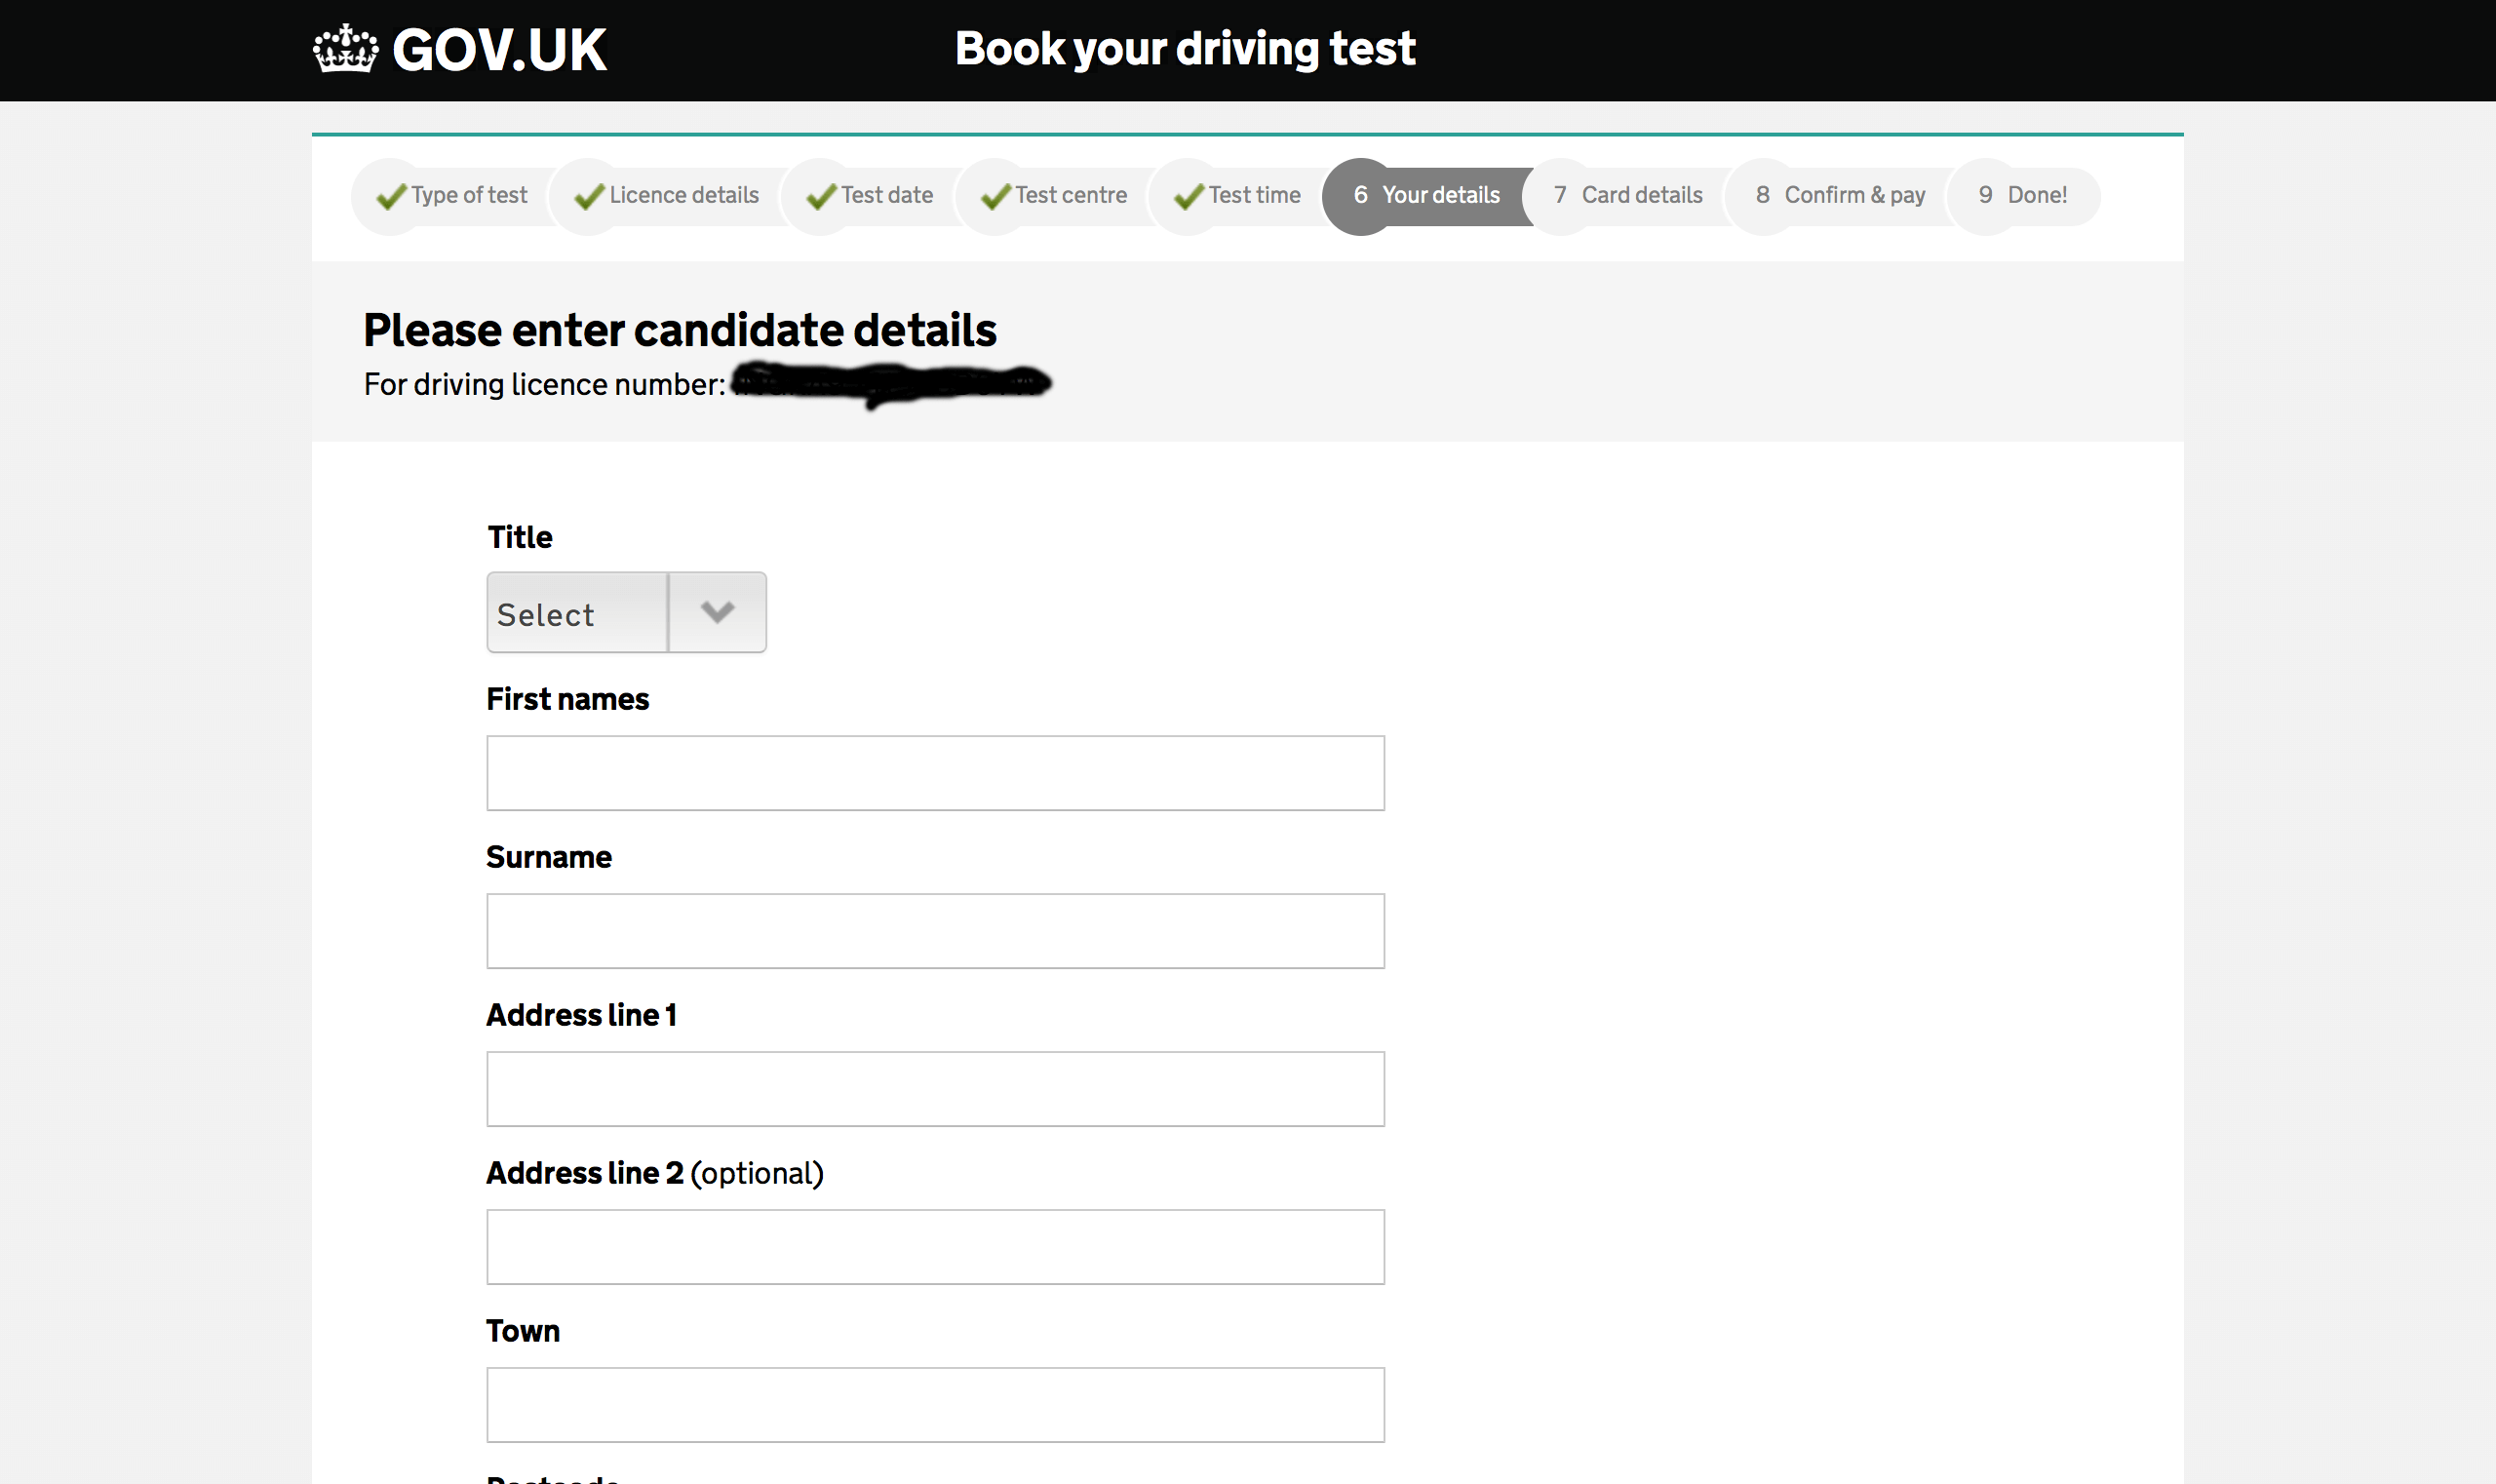 Book Driving Test (Guide on how to book your practical